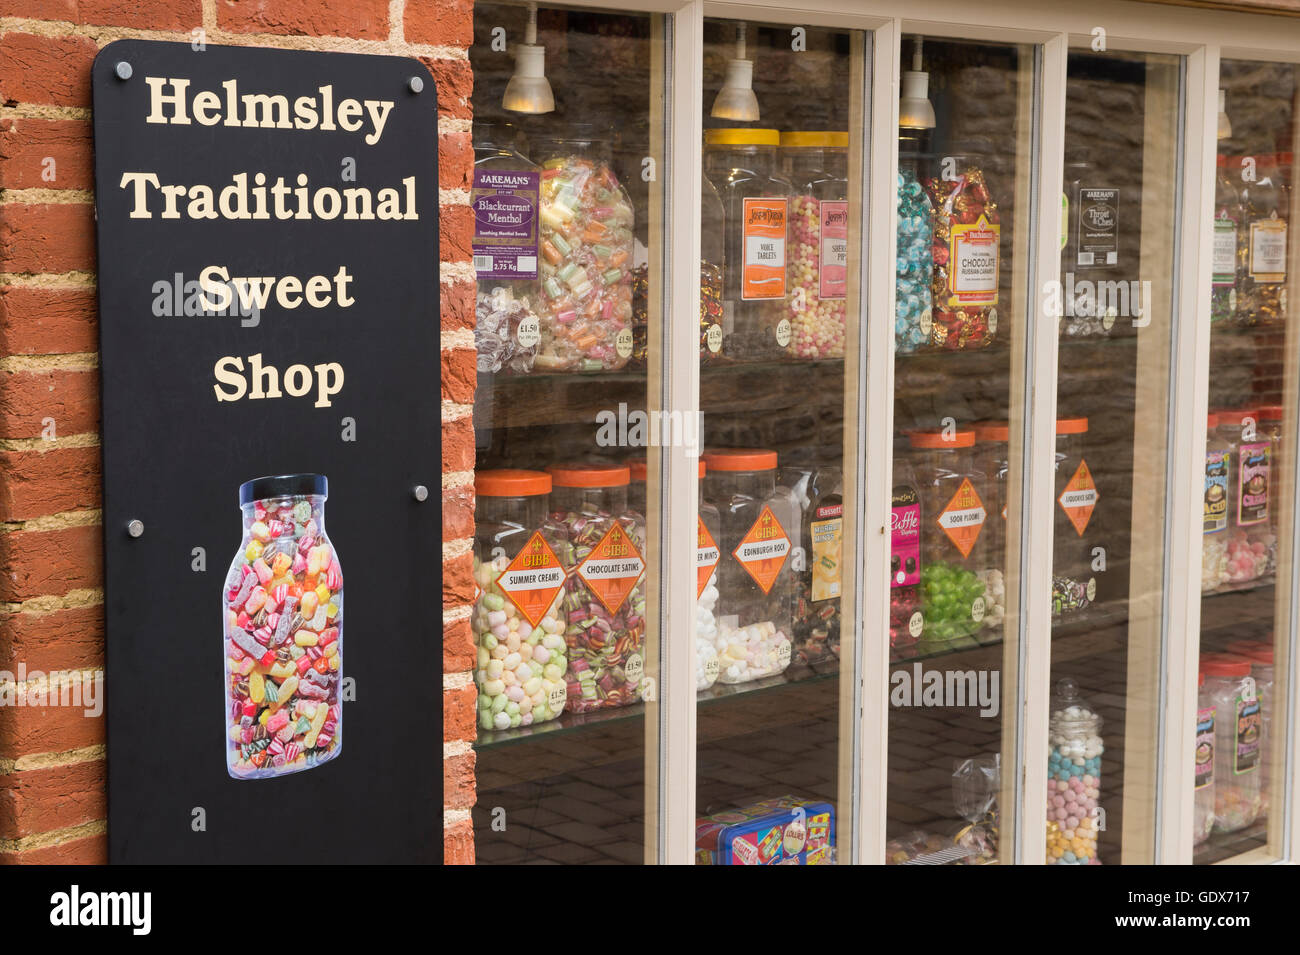 Helmsley Traditional Sweet Shop, Helmsley, North Yorkshire - close-up of sign and rows of sweet jars on display Stock Photo